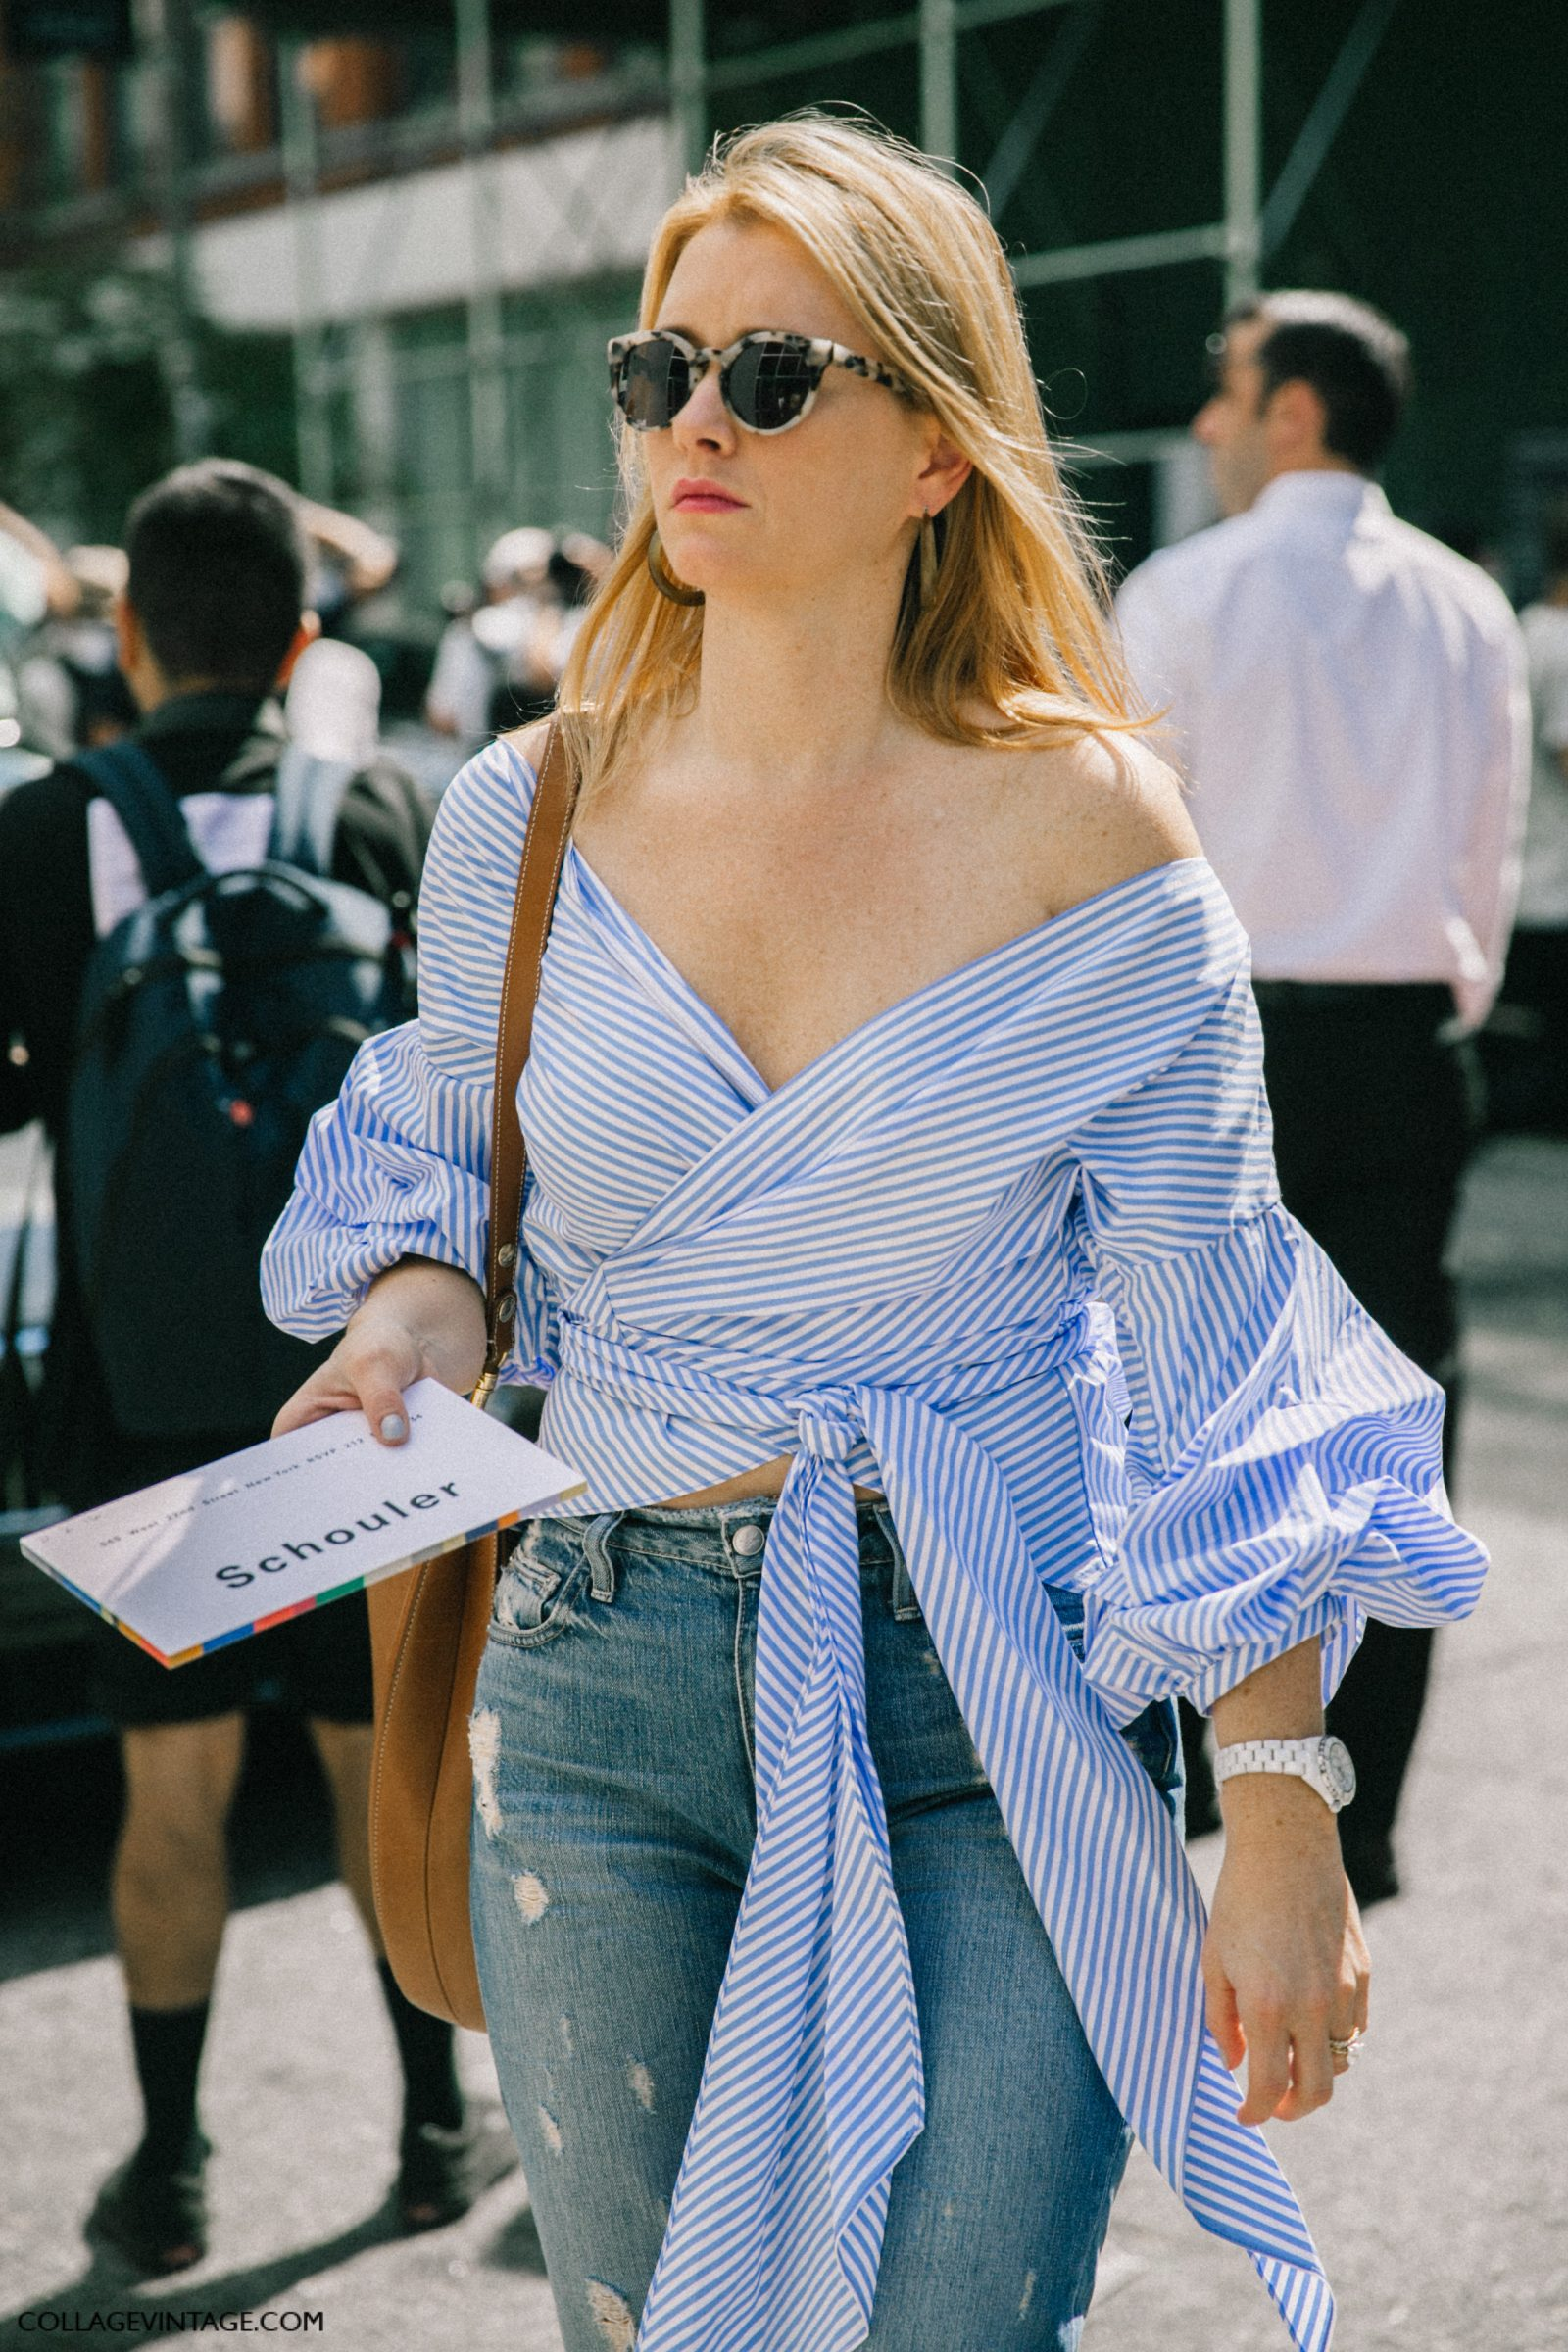 nyfw-new_york_fashion_week_ss17-street_style-outfits-collage_vintage-vintage-phillip_lim-the-row-proenza_schouler-rossie_aussolin-230